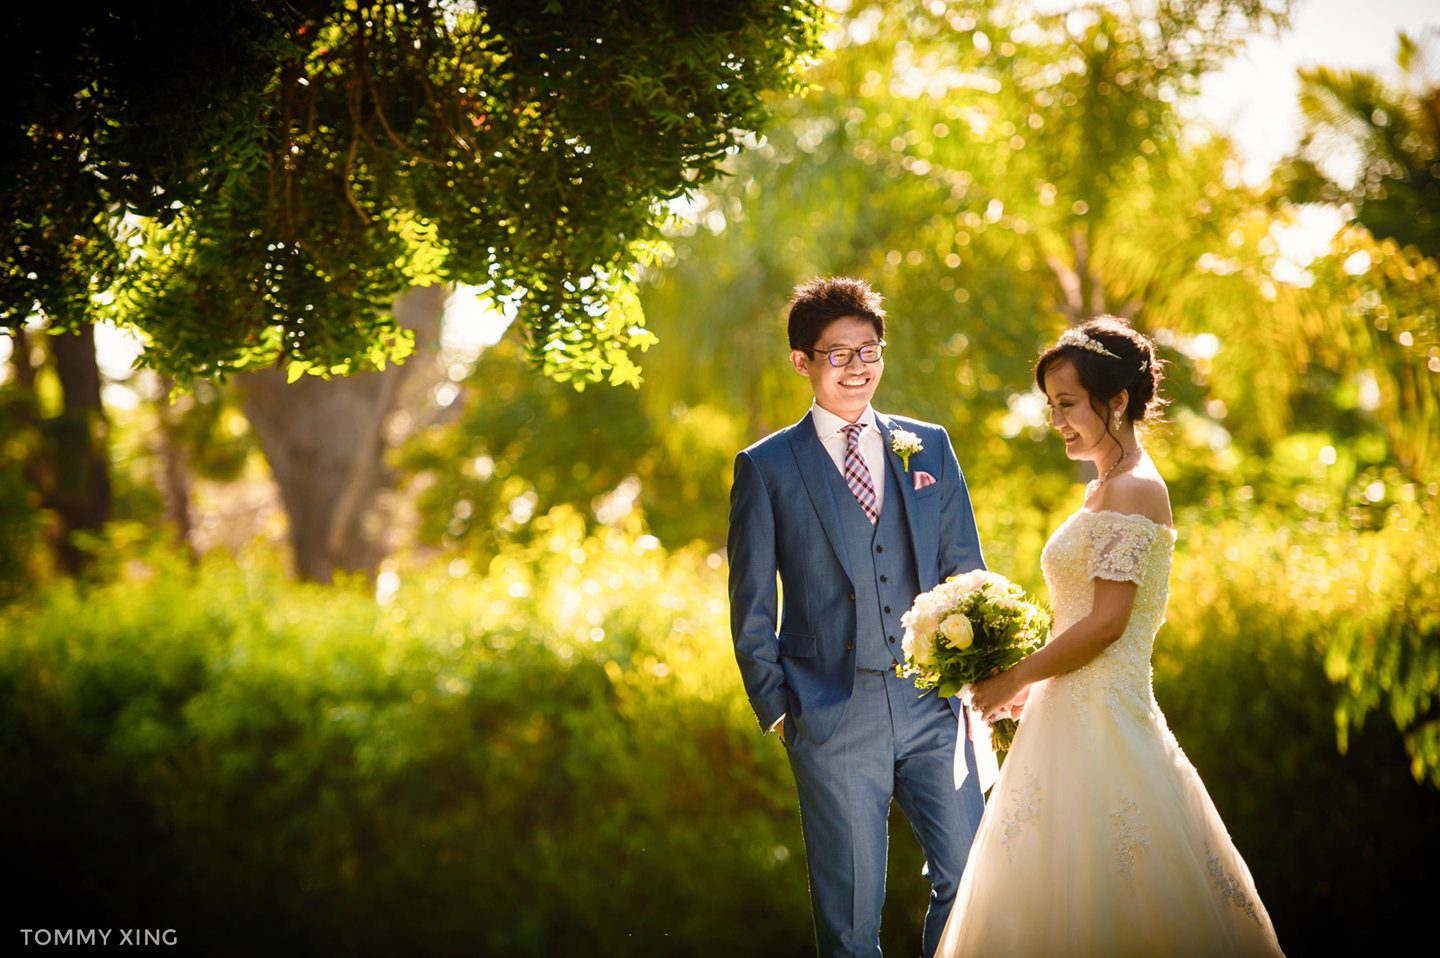 Paradise Point Resort Wedding Xiaolu & Bin San Diego 圣地亚哥婚礼摄影跟拍 Tommy Xing Photography 洛杉矶婚礼婚纱照摄影师 076.jpg